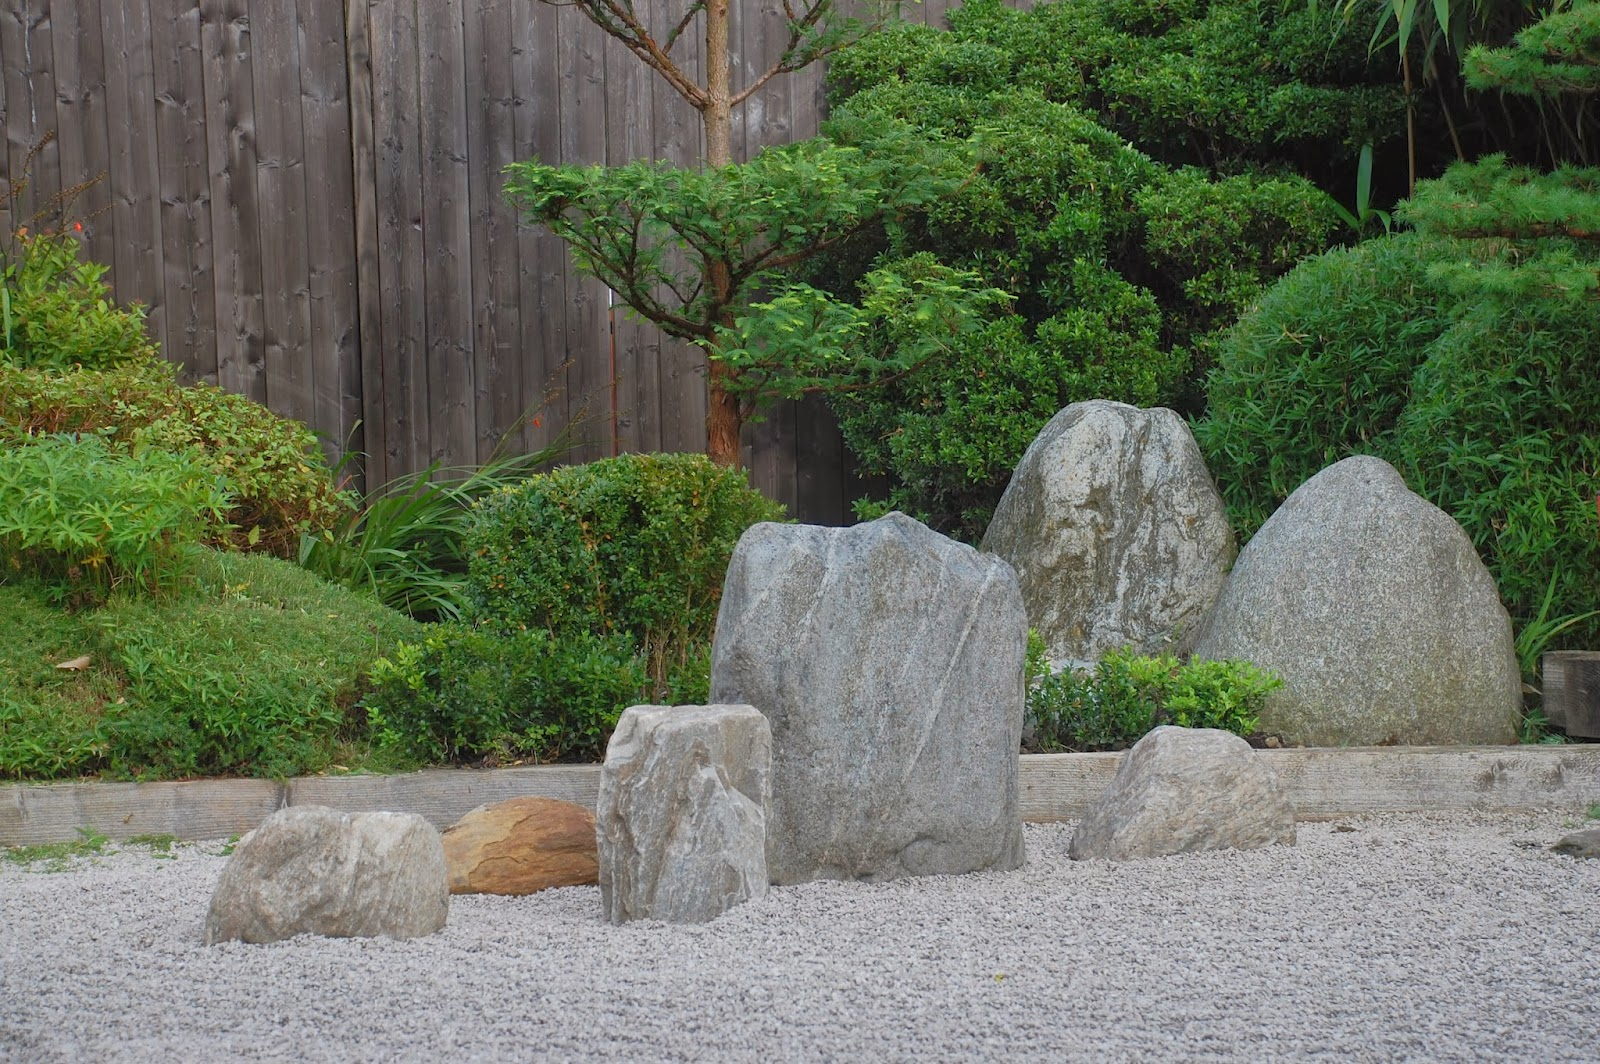 Robert ketchell 39 s blog arranging stones in a japanese for Deco exterieur jardin zen